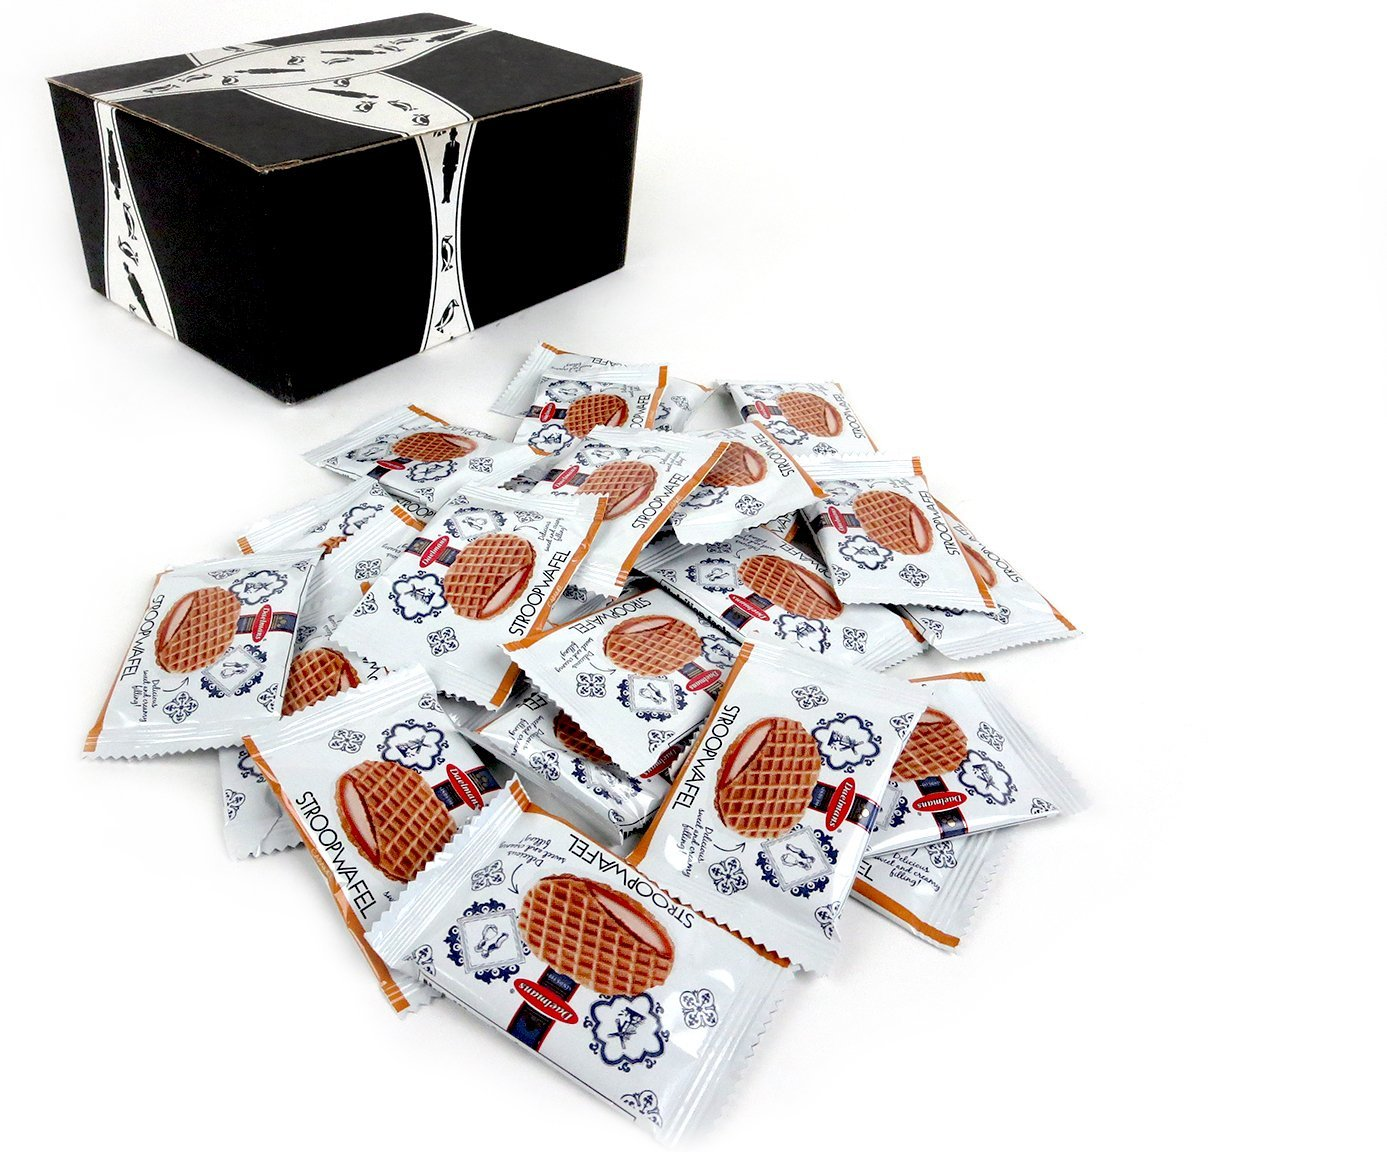 Daelmans Bite Size Caramel Stroopwafels, 0.28 oz Packages in a BlackTie Box (Pack of 25)